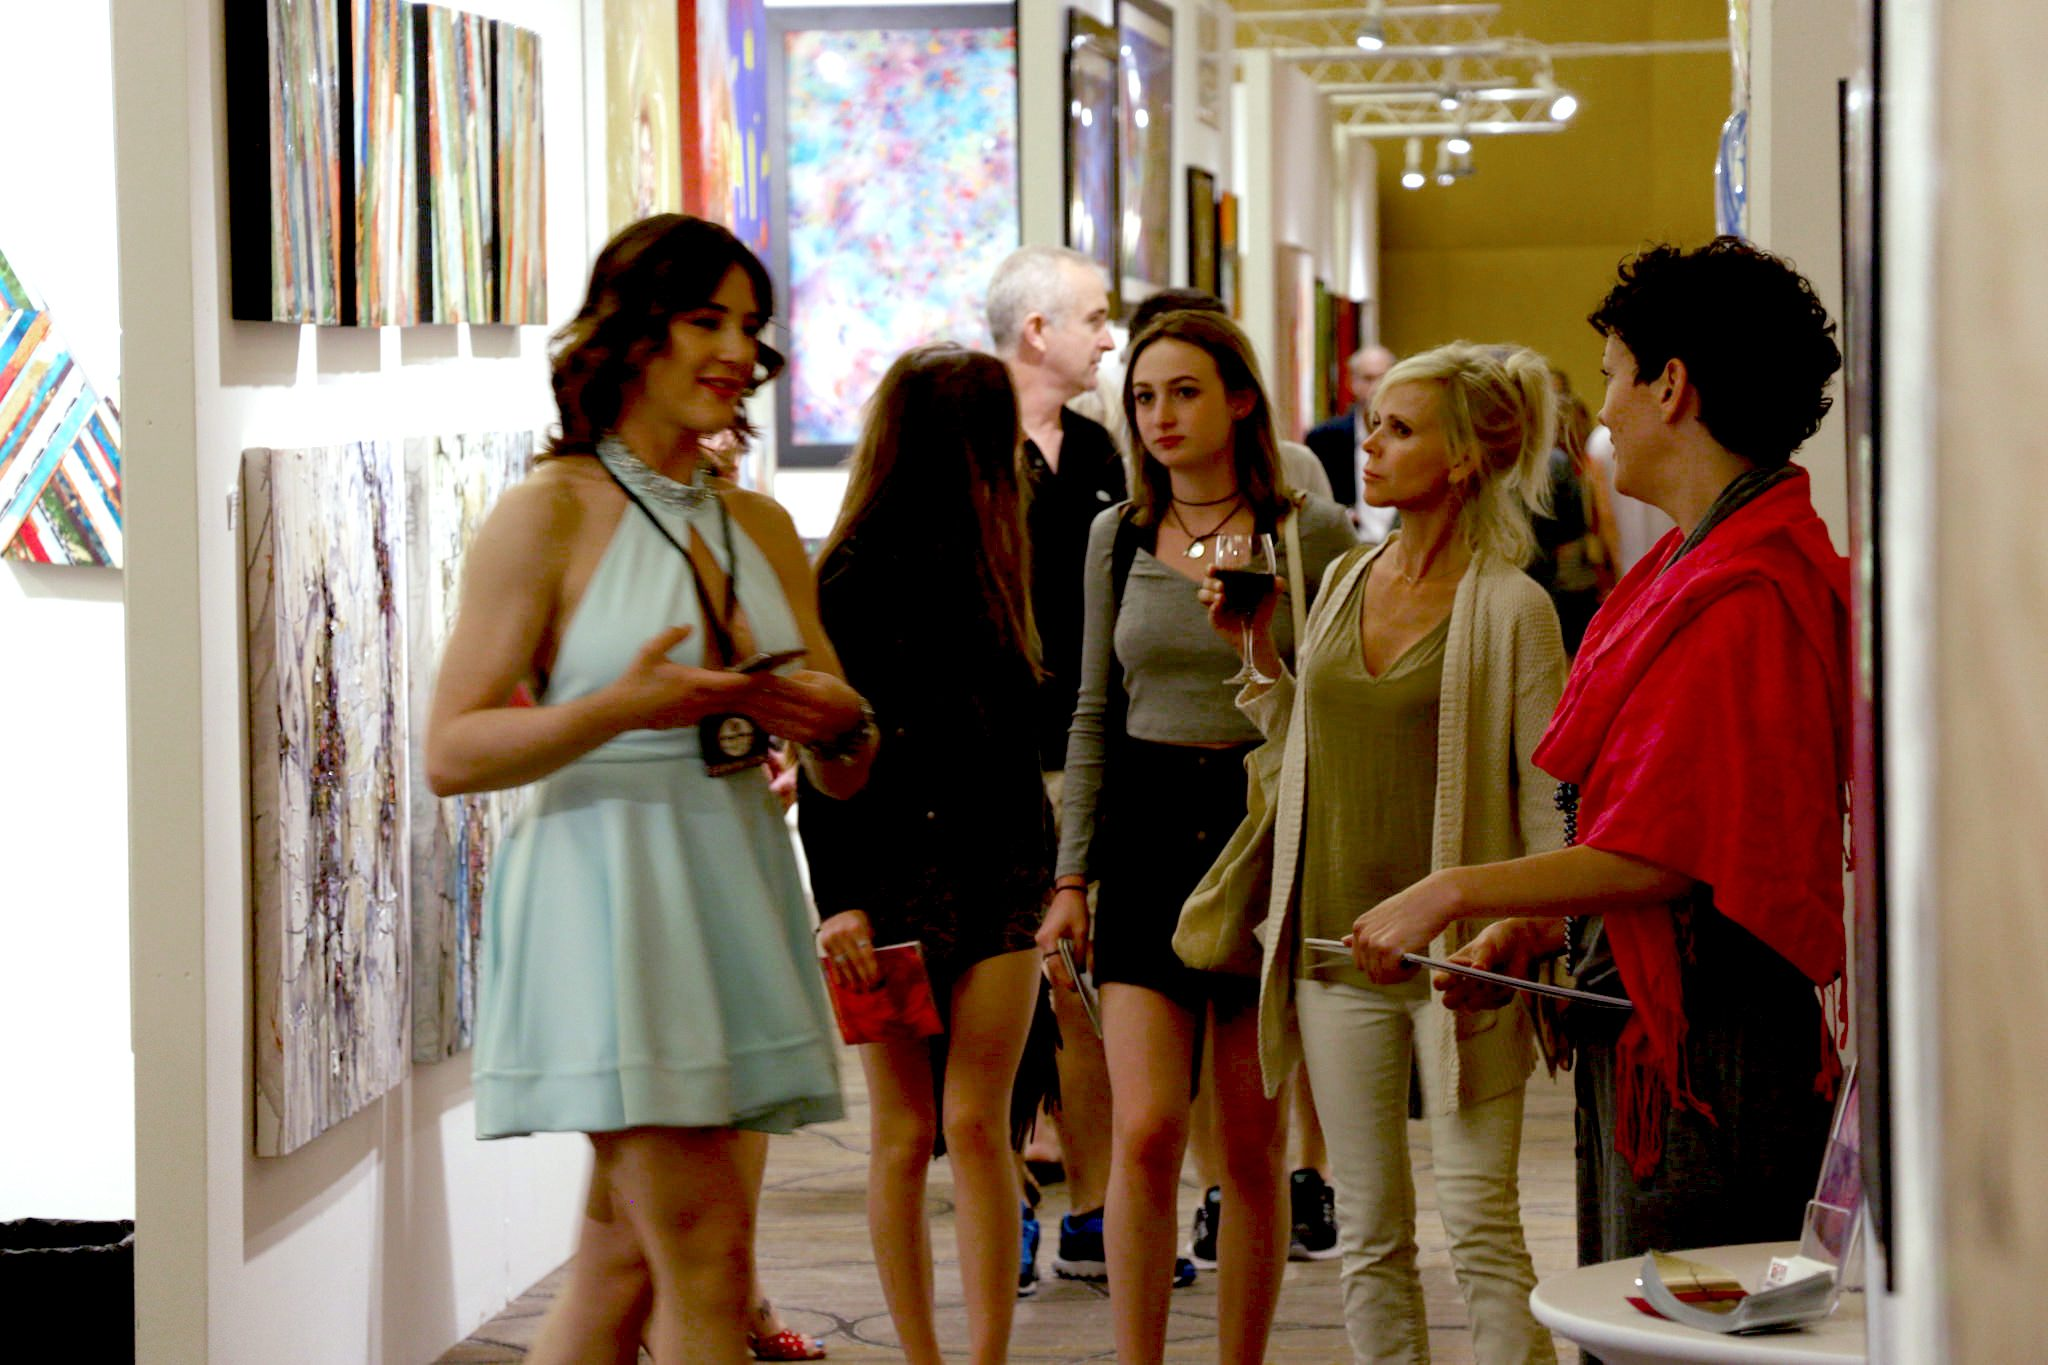 Crowds enjoyed complimentary wine and art from over 40 exhibiting galleries on the opening night of the show.